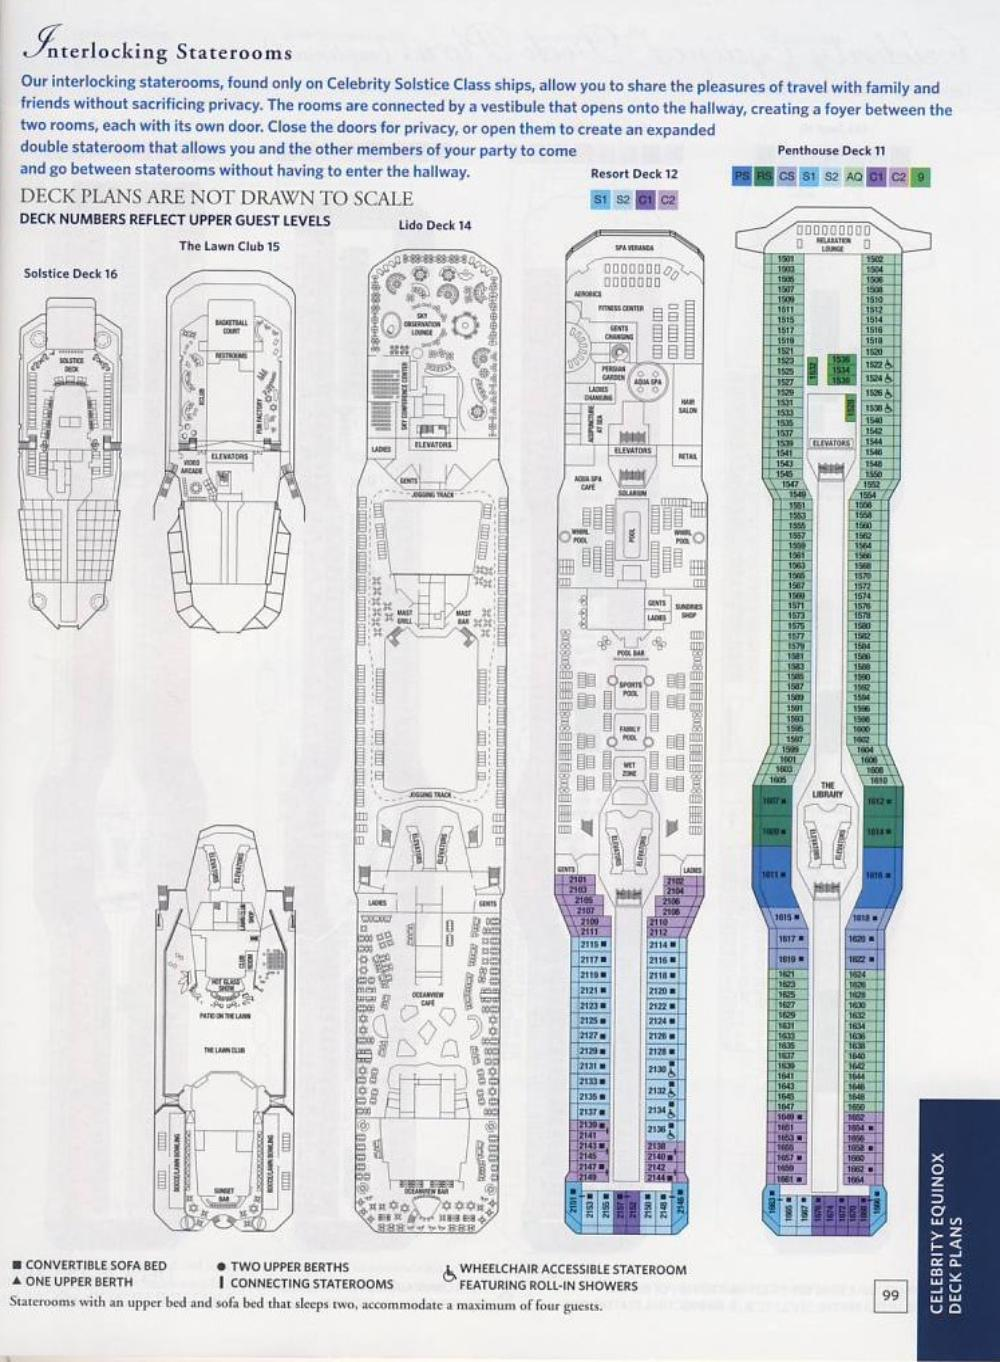 Celebrity Reflection Deck Plans, Ship Layout & Staterooms ...